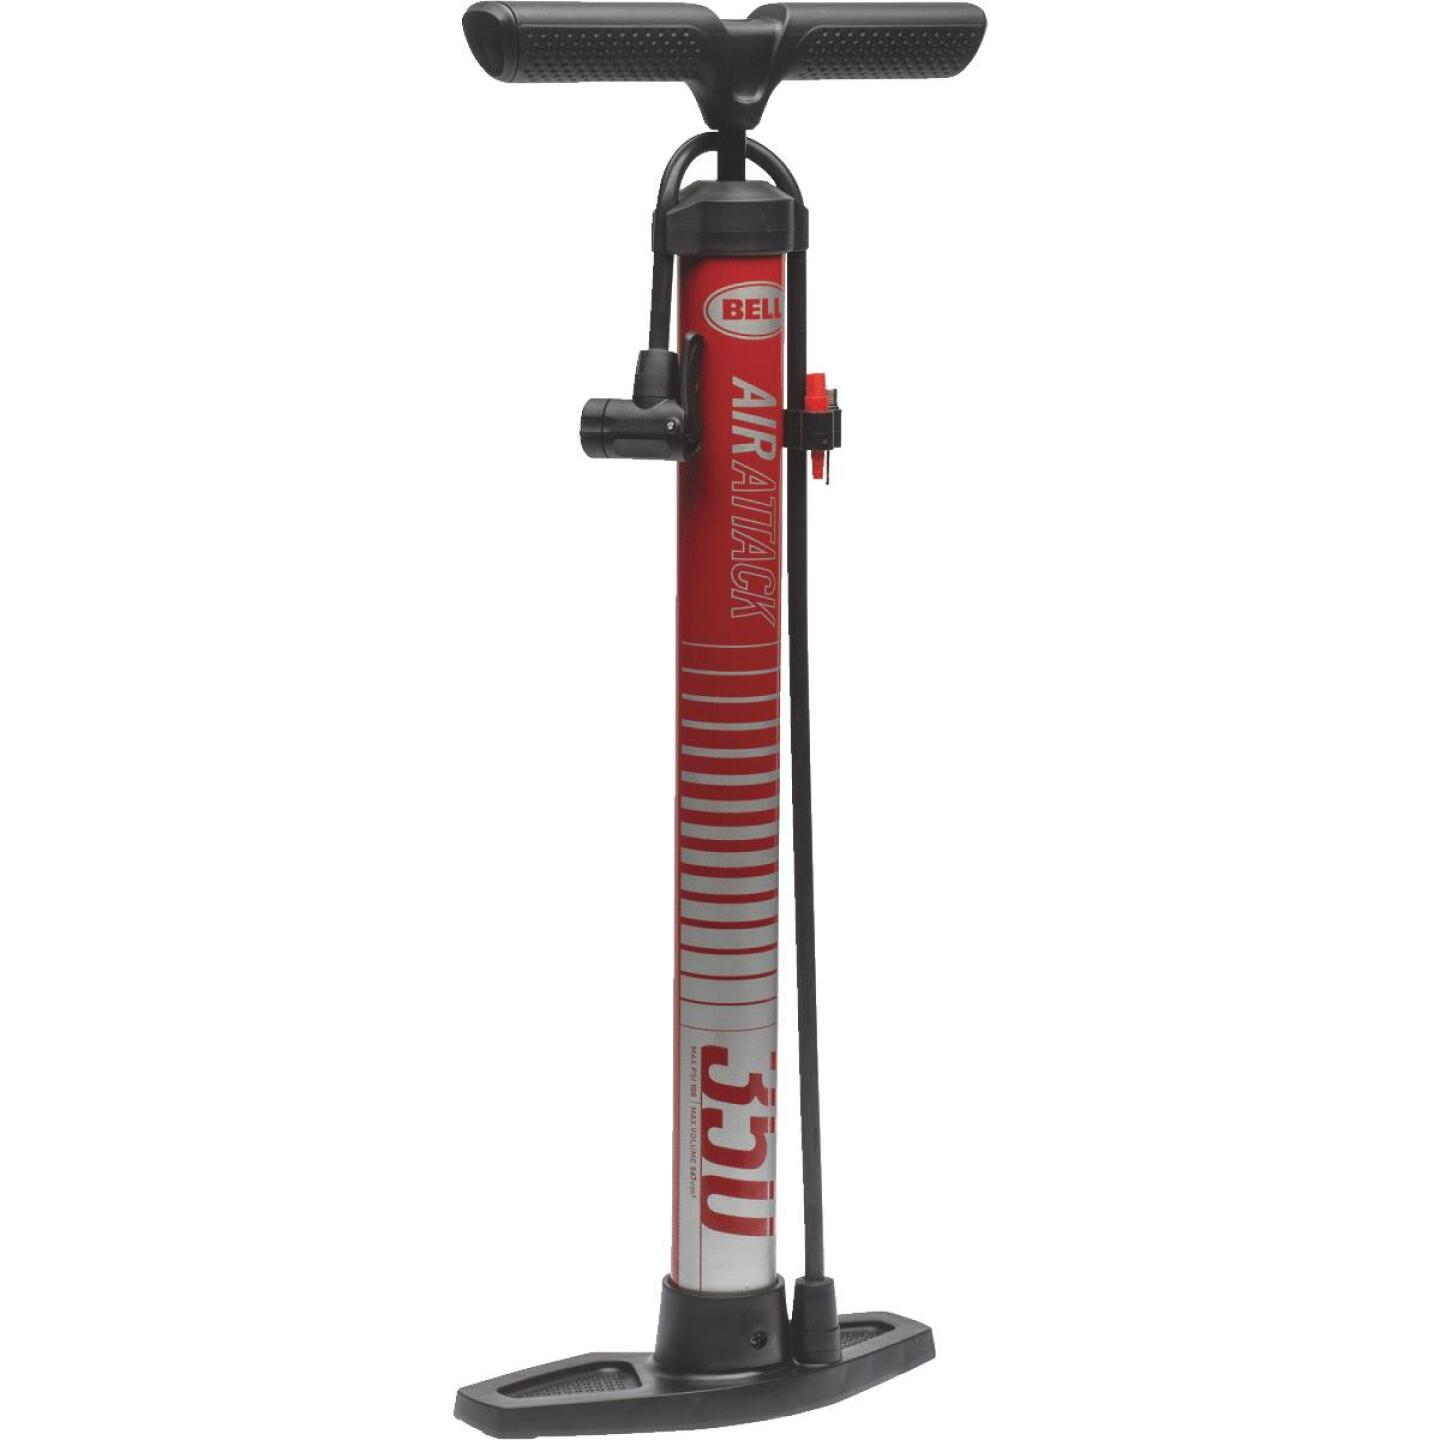 Bell Sports Air Attack Schrader Valve 100 PSI Bicycle Floor Pump Image 1